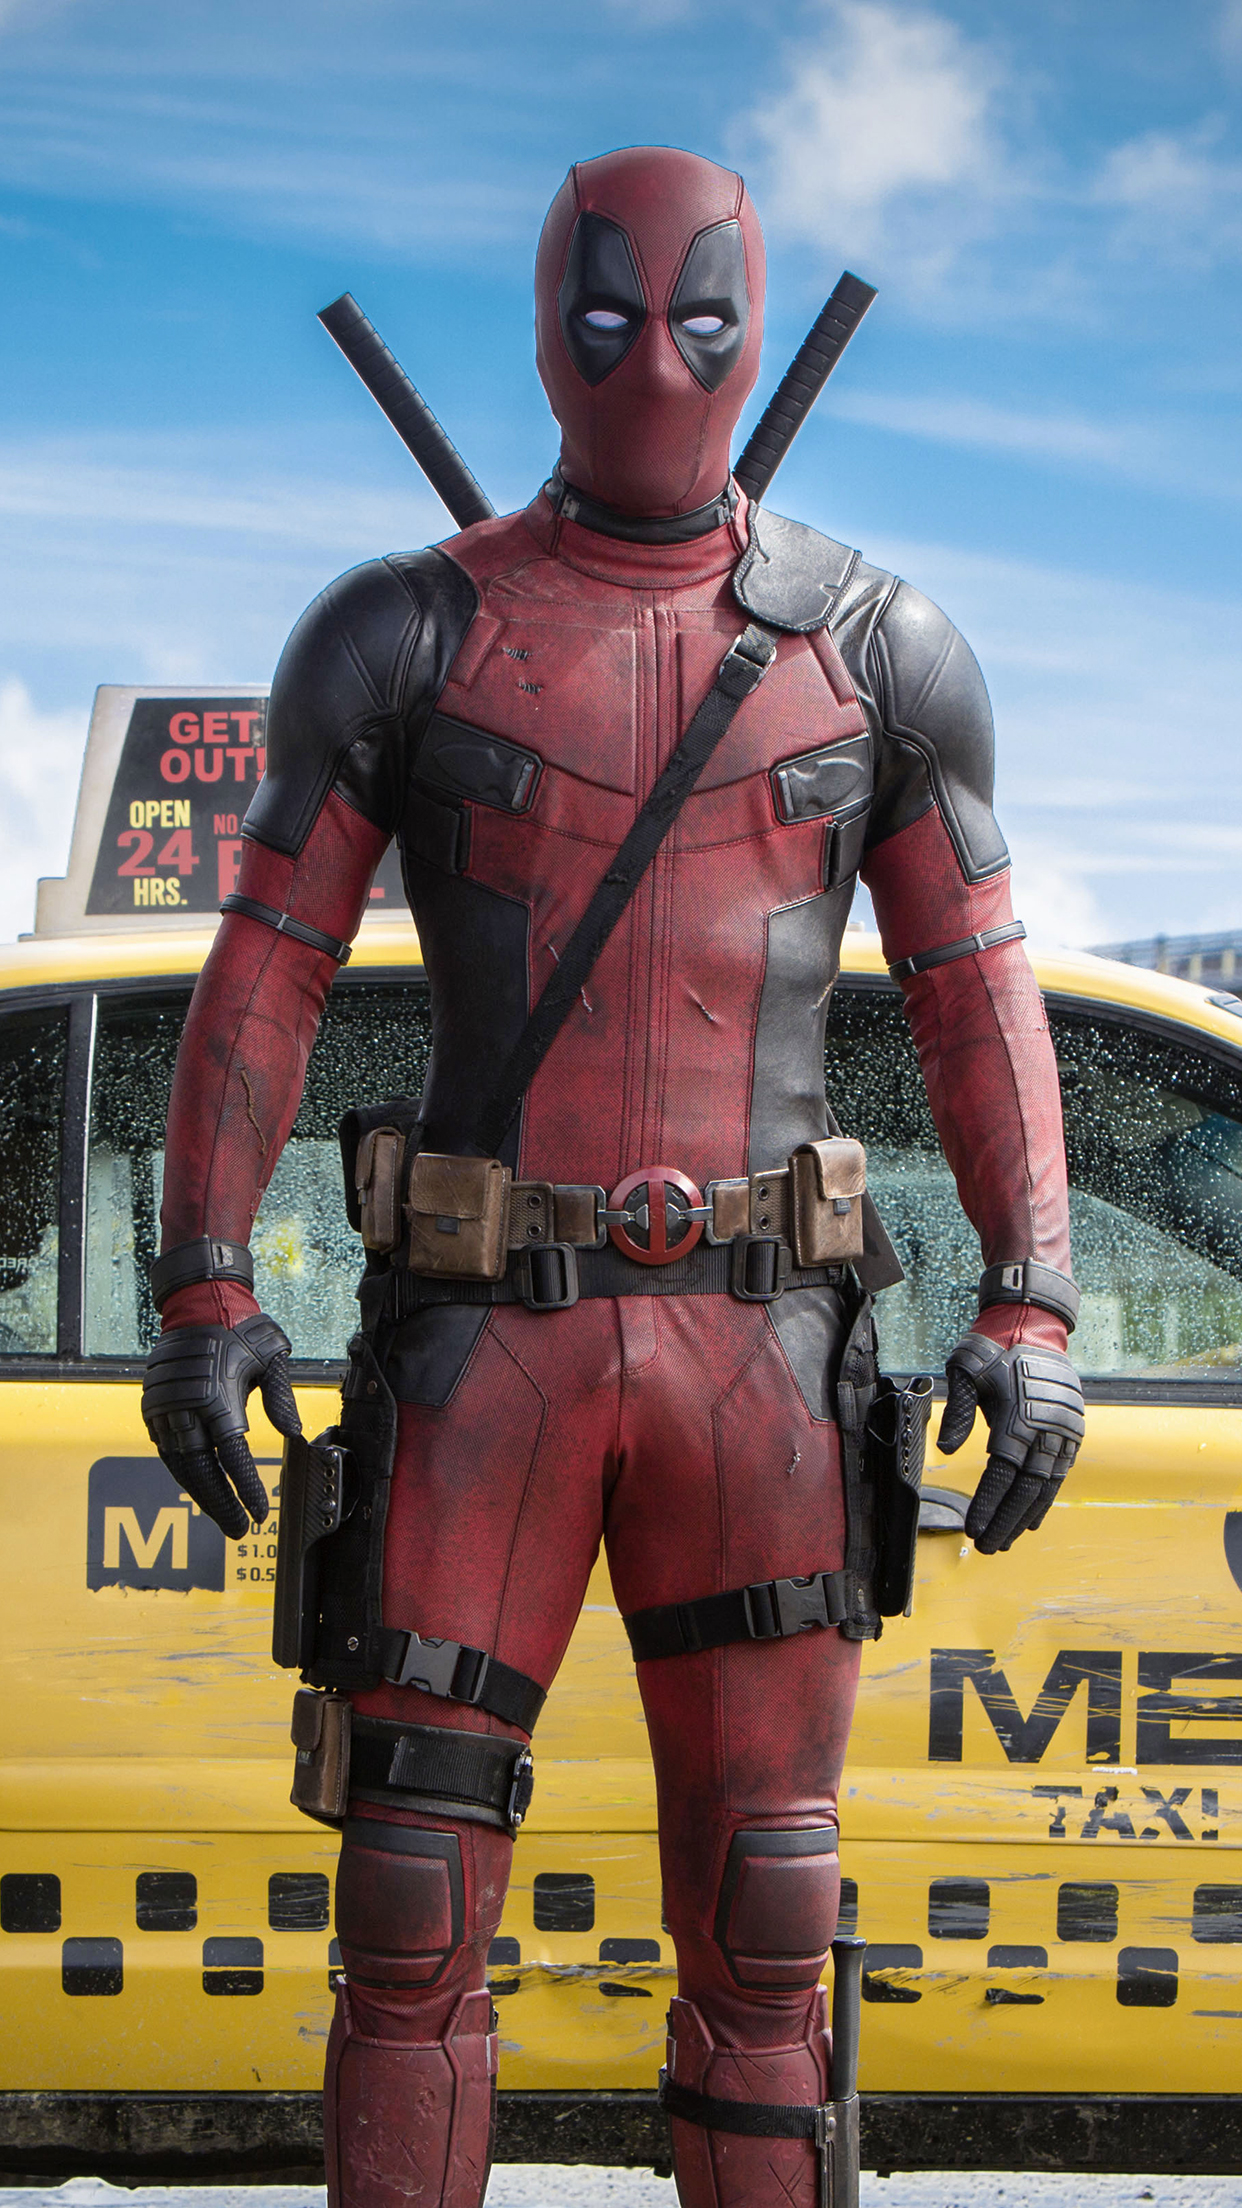 DeadPool poster 3Wallpapers iPhone Parallax Les 3 Wallpapers iPhone du 1242x2208